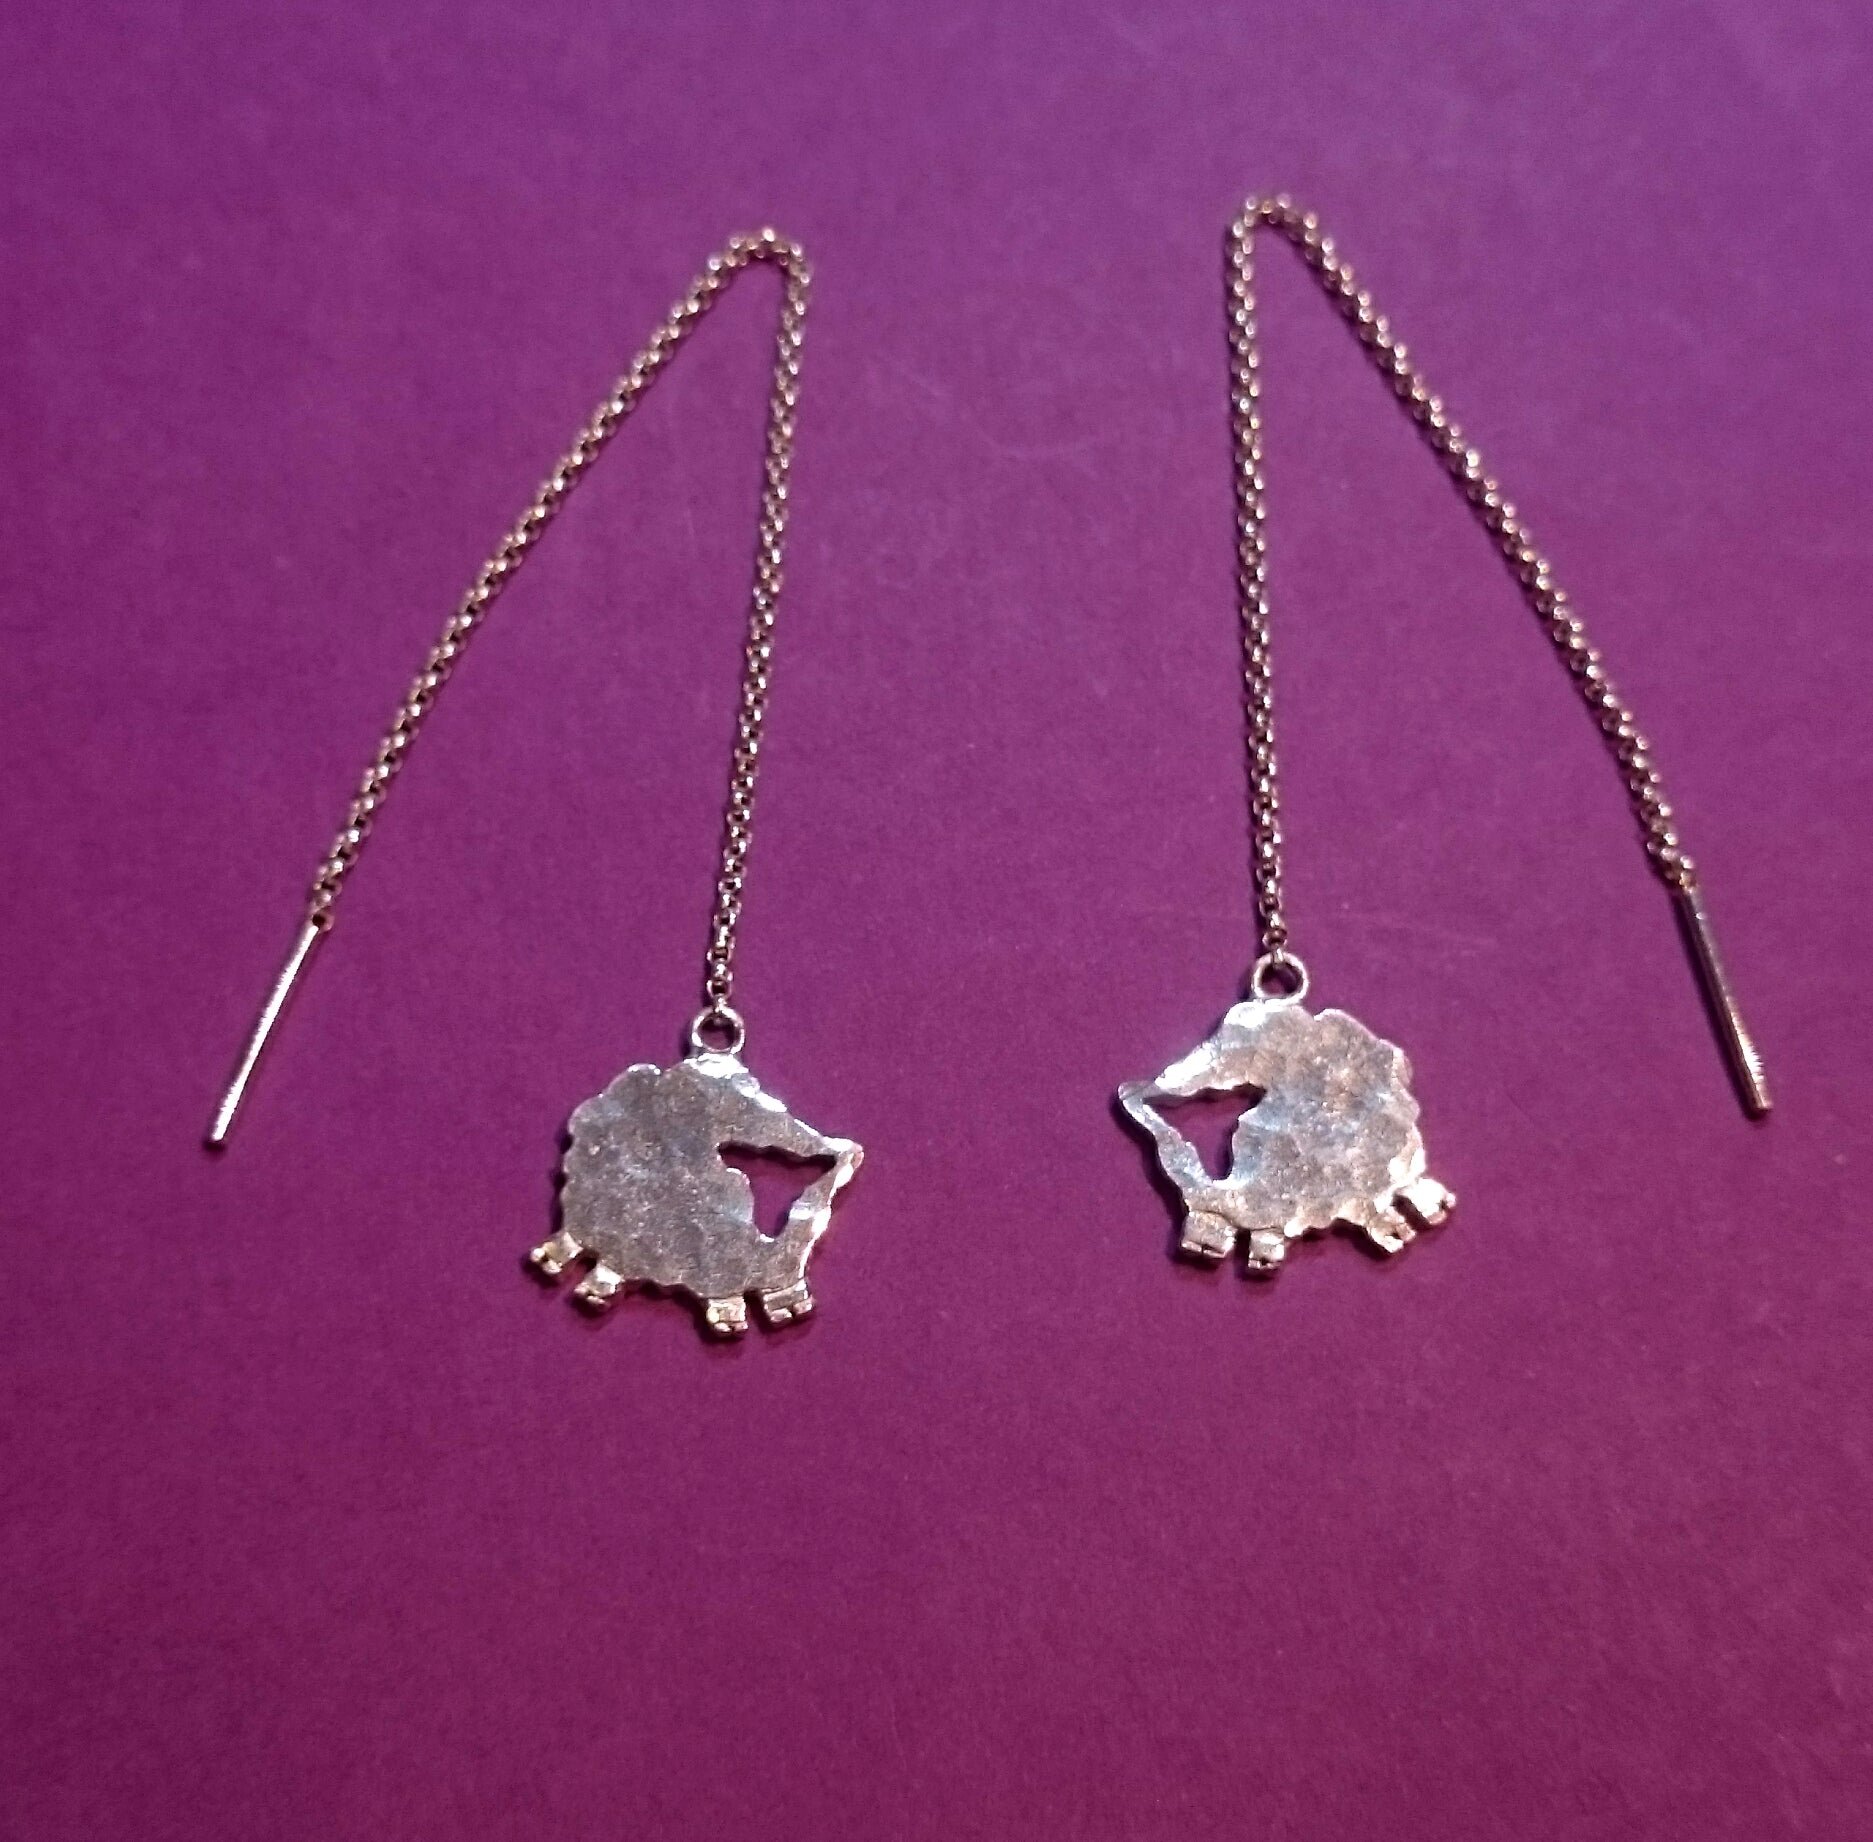 Jumping for Joy Sheep Pull Through Earrings, from Elena's Simply Sheep Jewellery Collection.